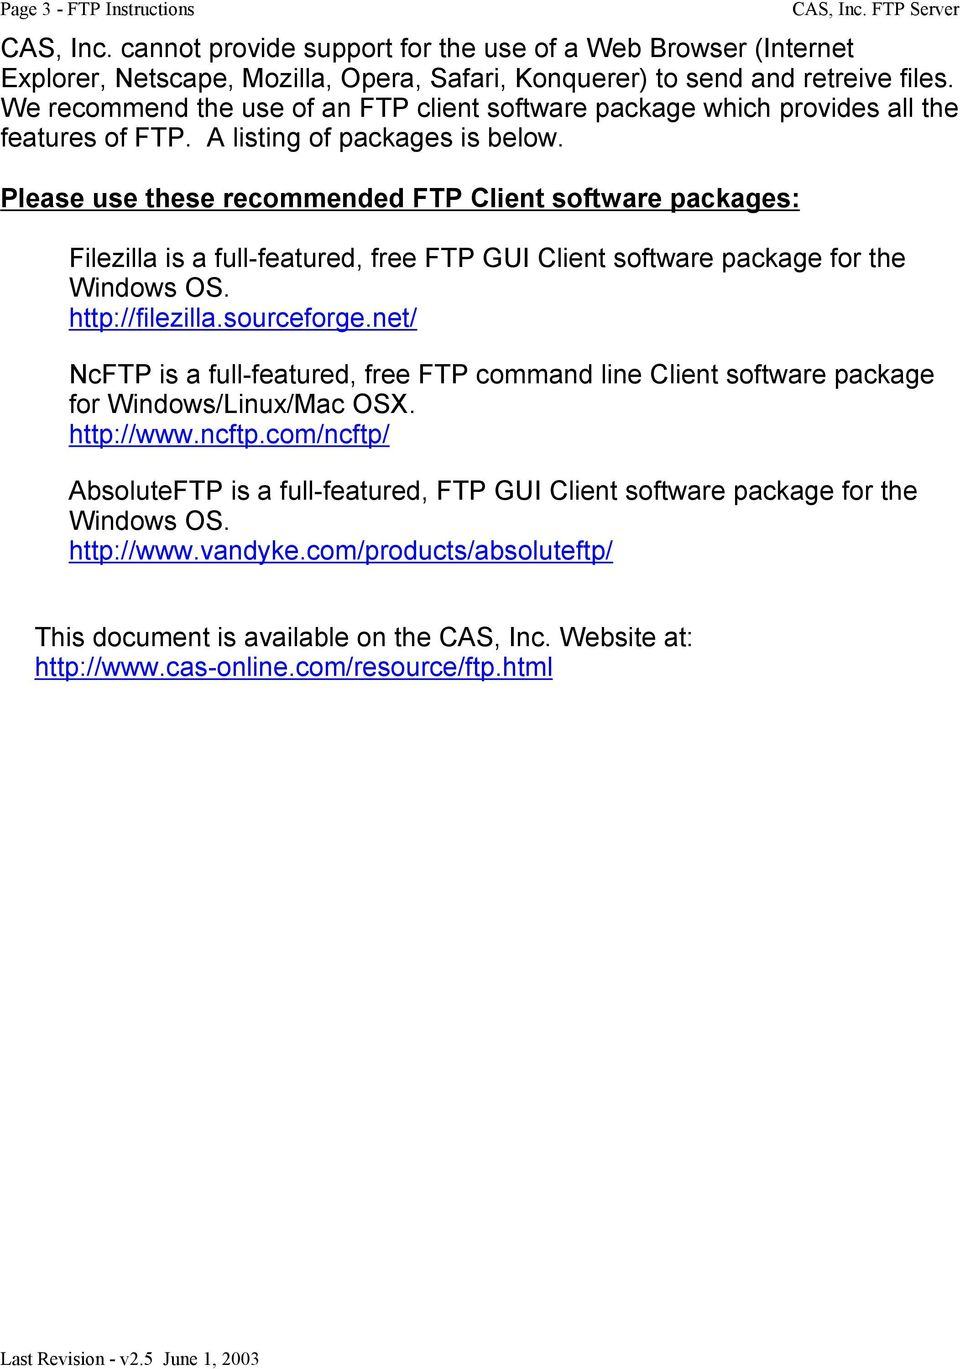 FTP File Transfer Protocol A Method to Send and Receive